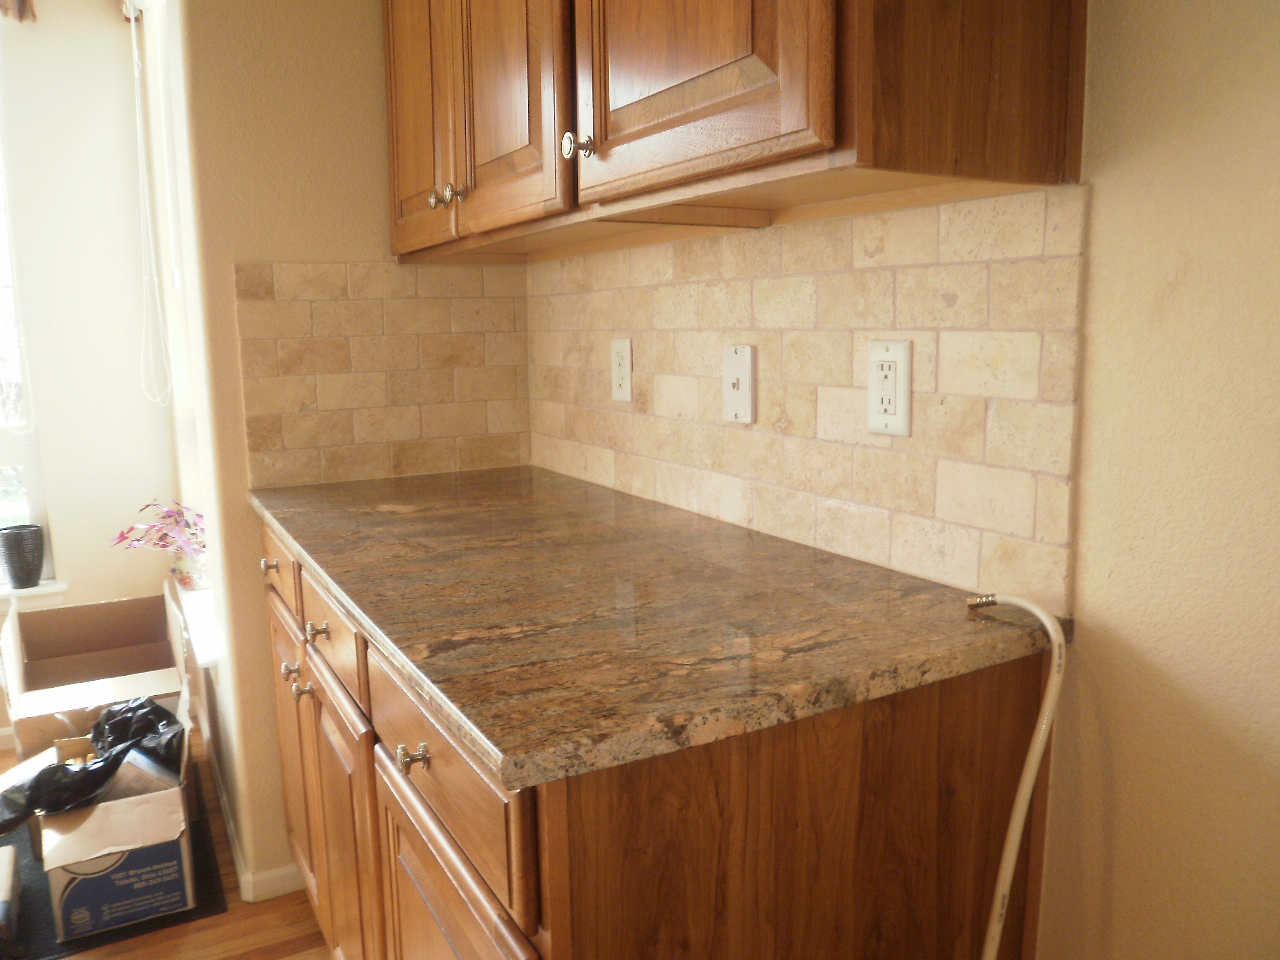 Integrity installations a division of front range backsplash 3x6 tumbled ivory - Backsplash designs travertine ...